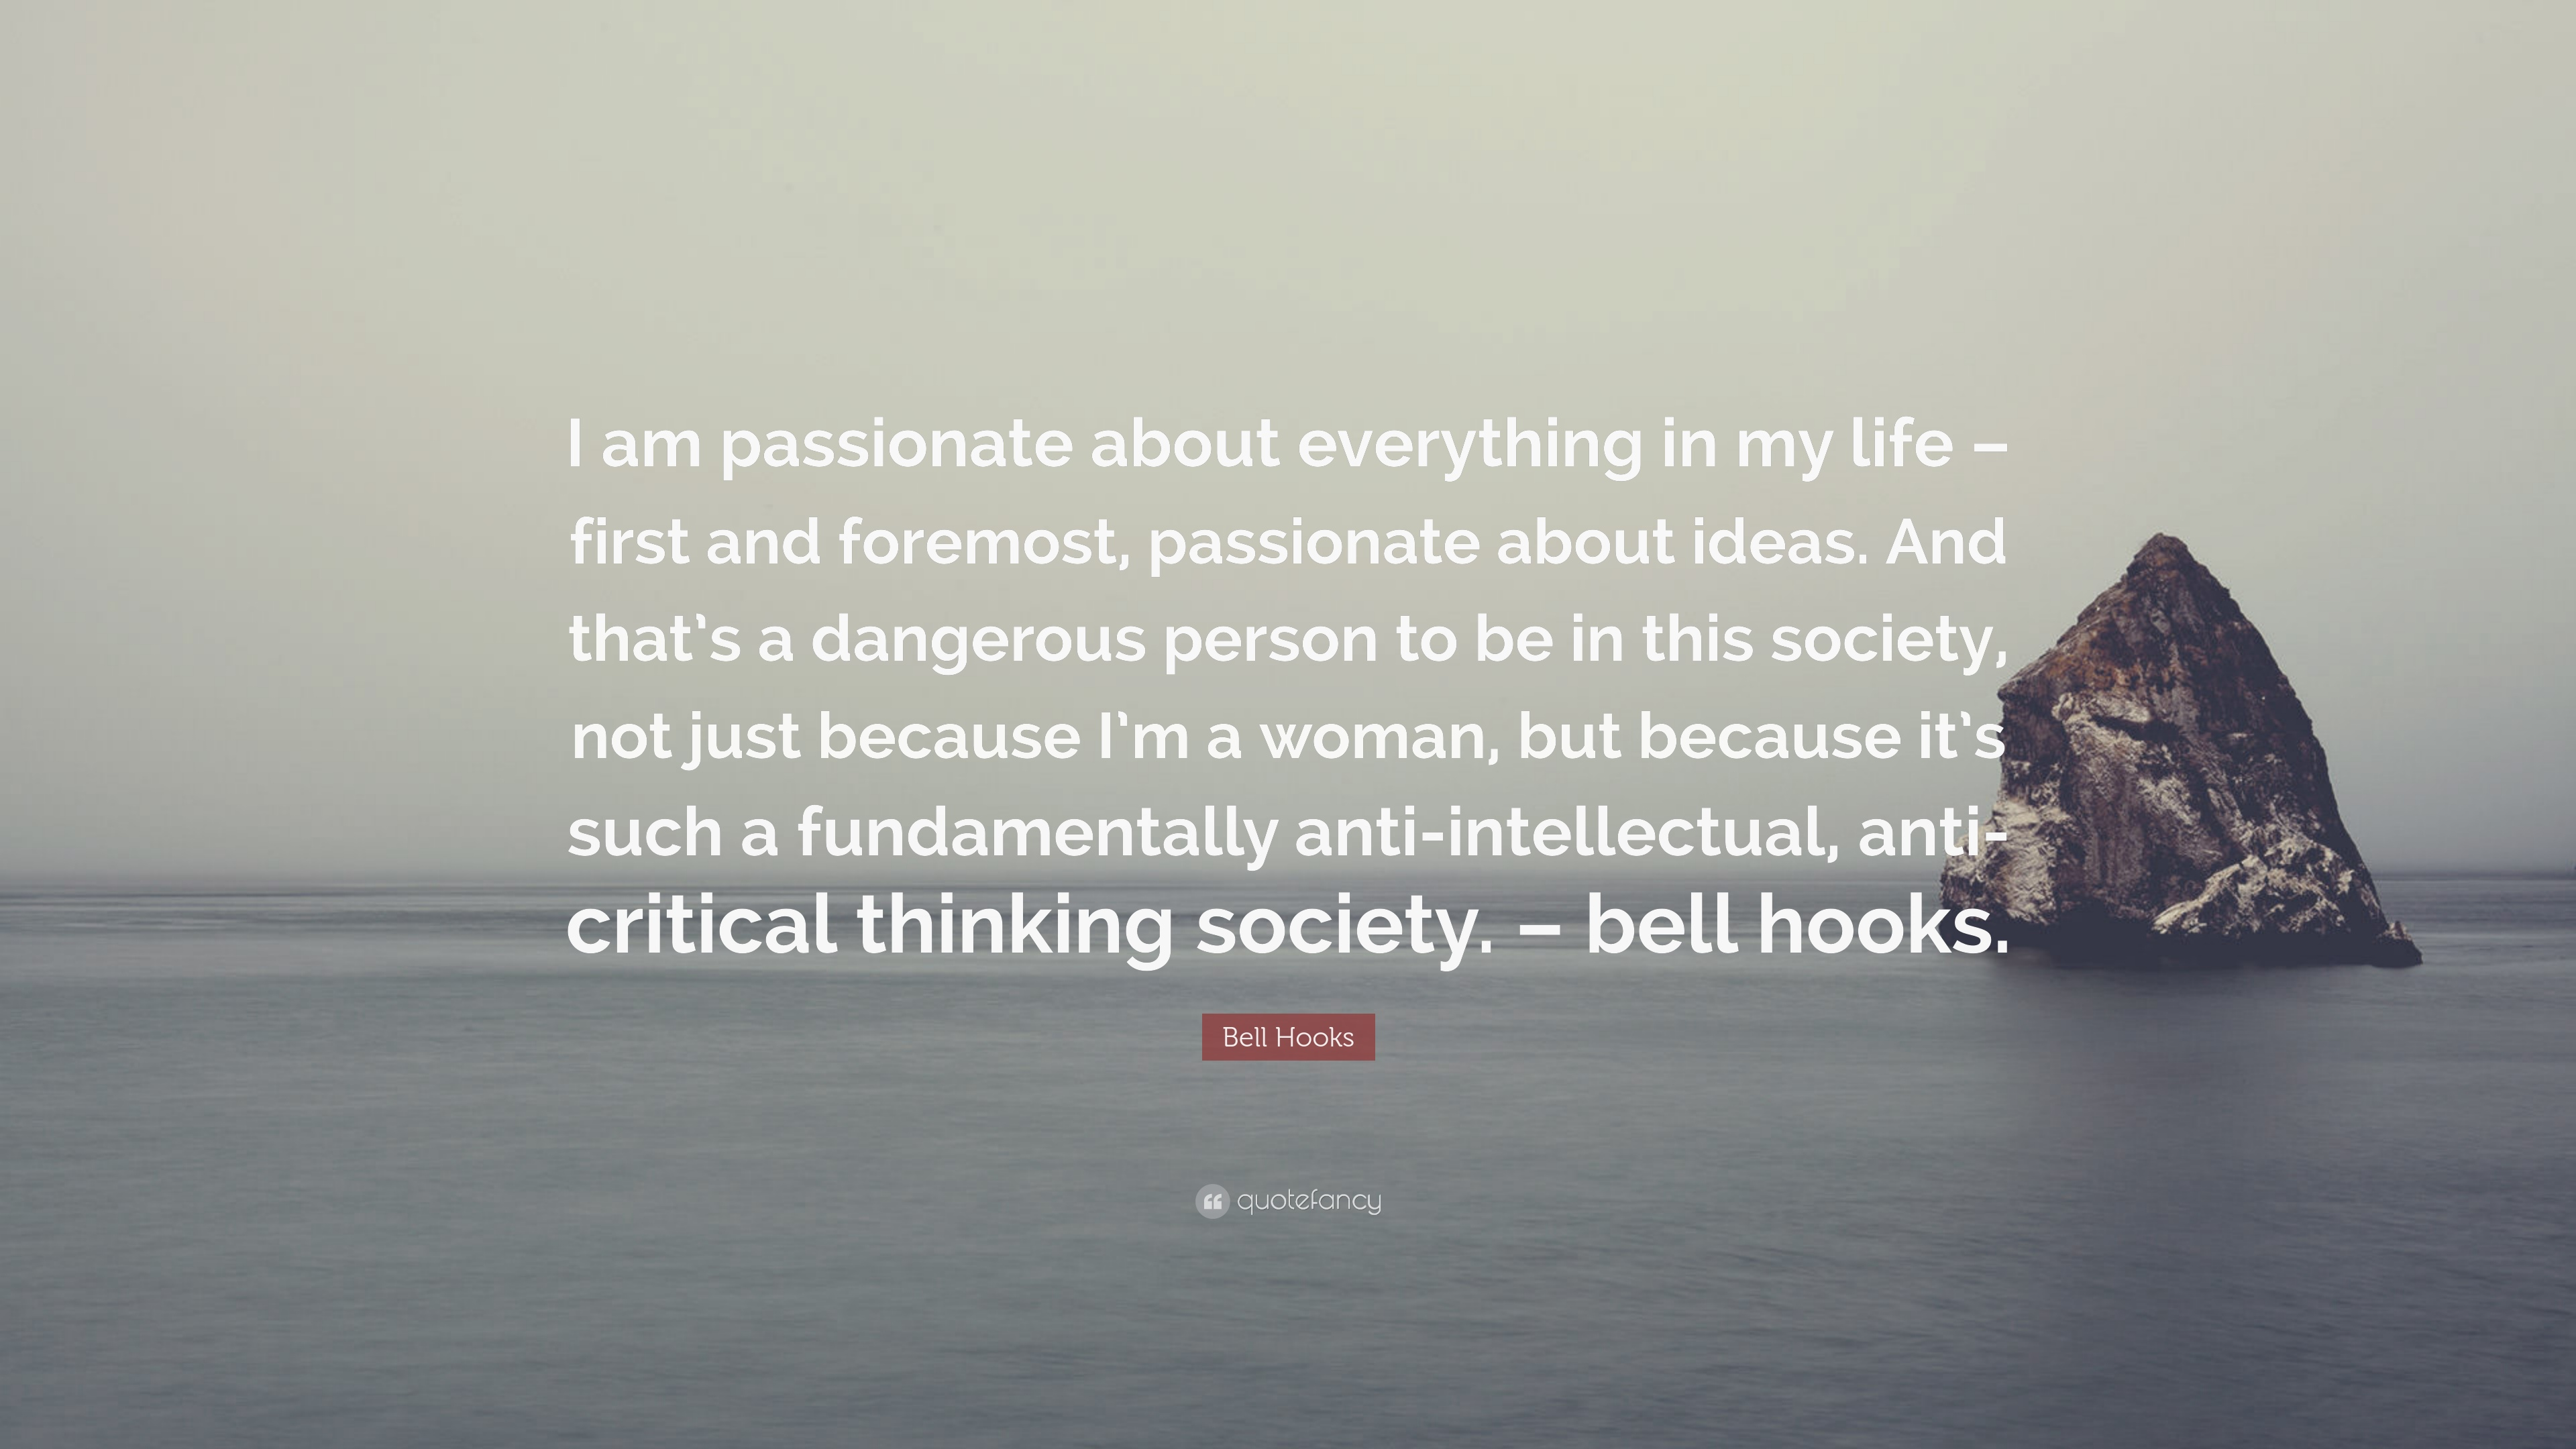 bell hooks quote i am passionate about everything in my life bell hooks quote i am passionate about everything in my life first and